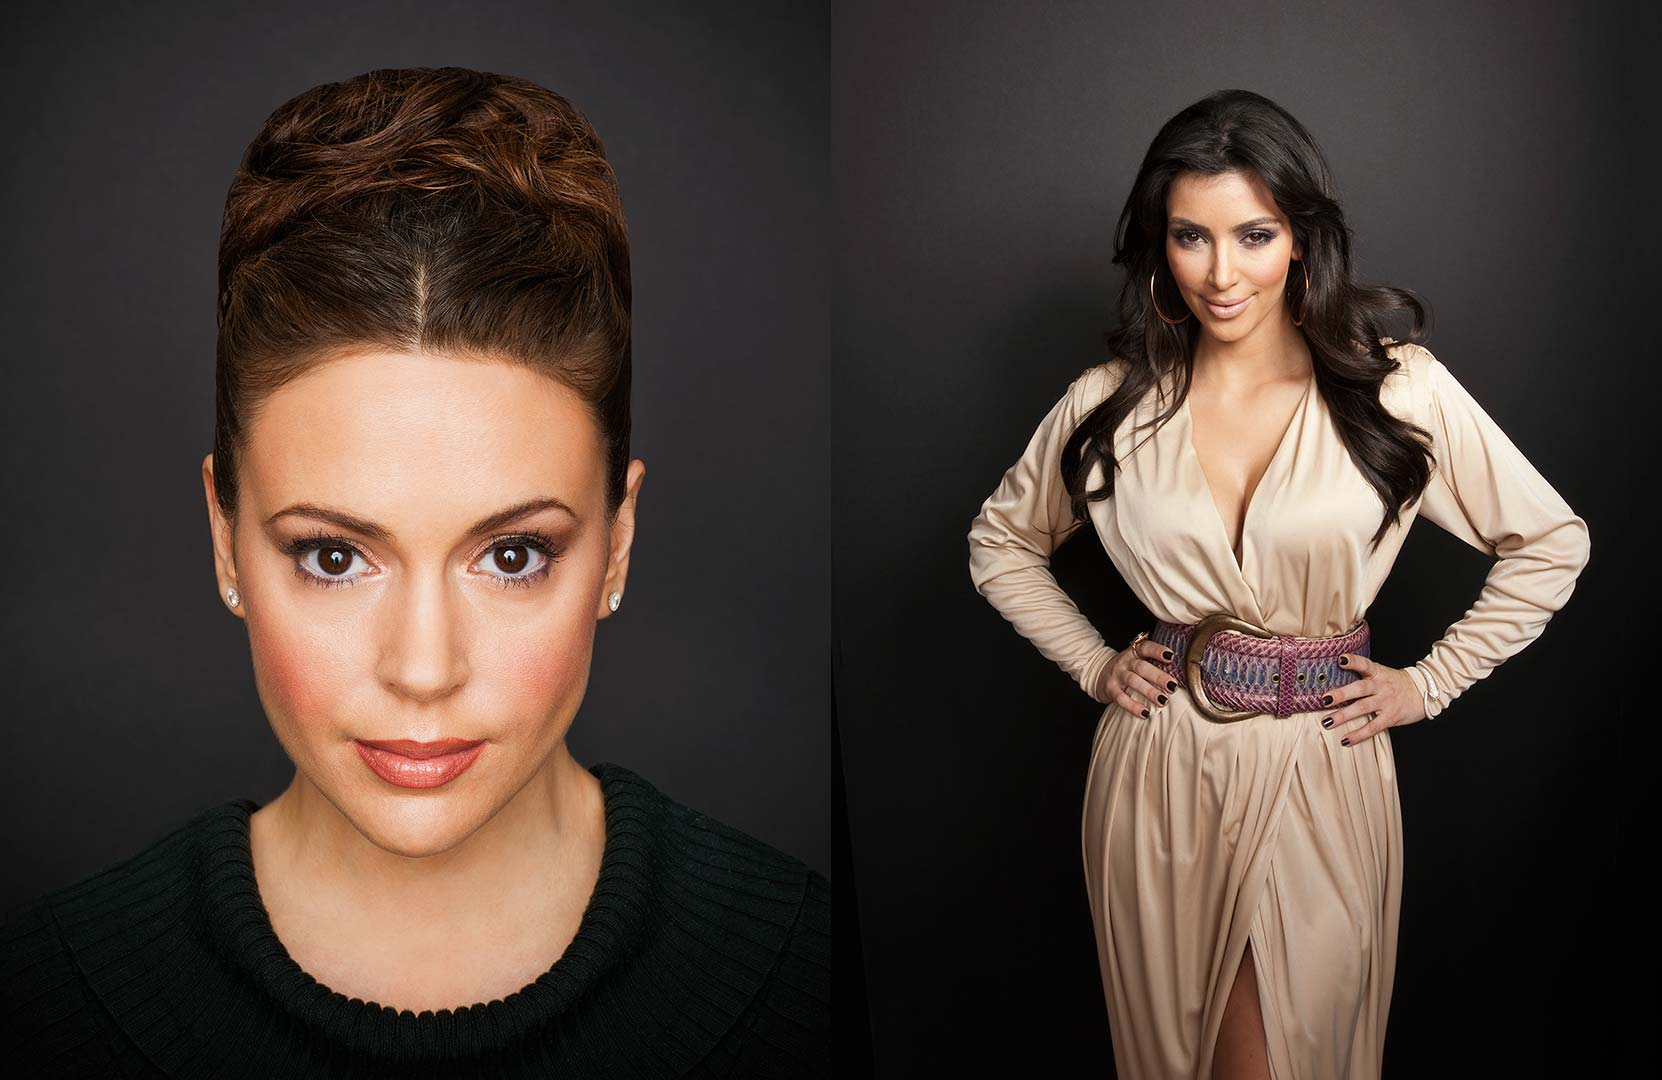 Celebrity portrait photography of Alyssa Milano and Kim Kardashian